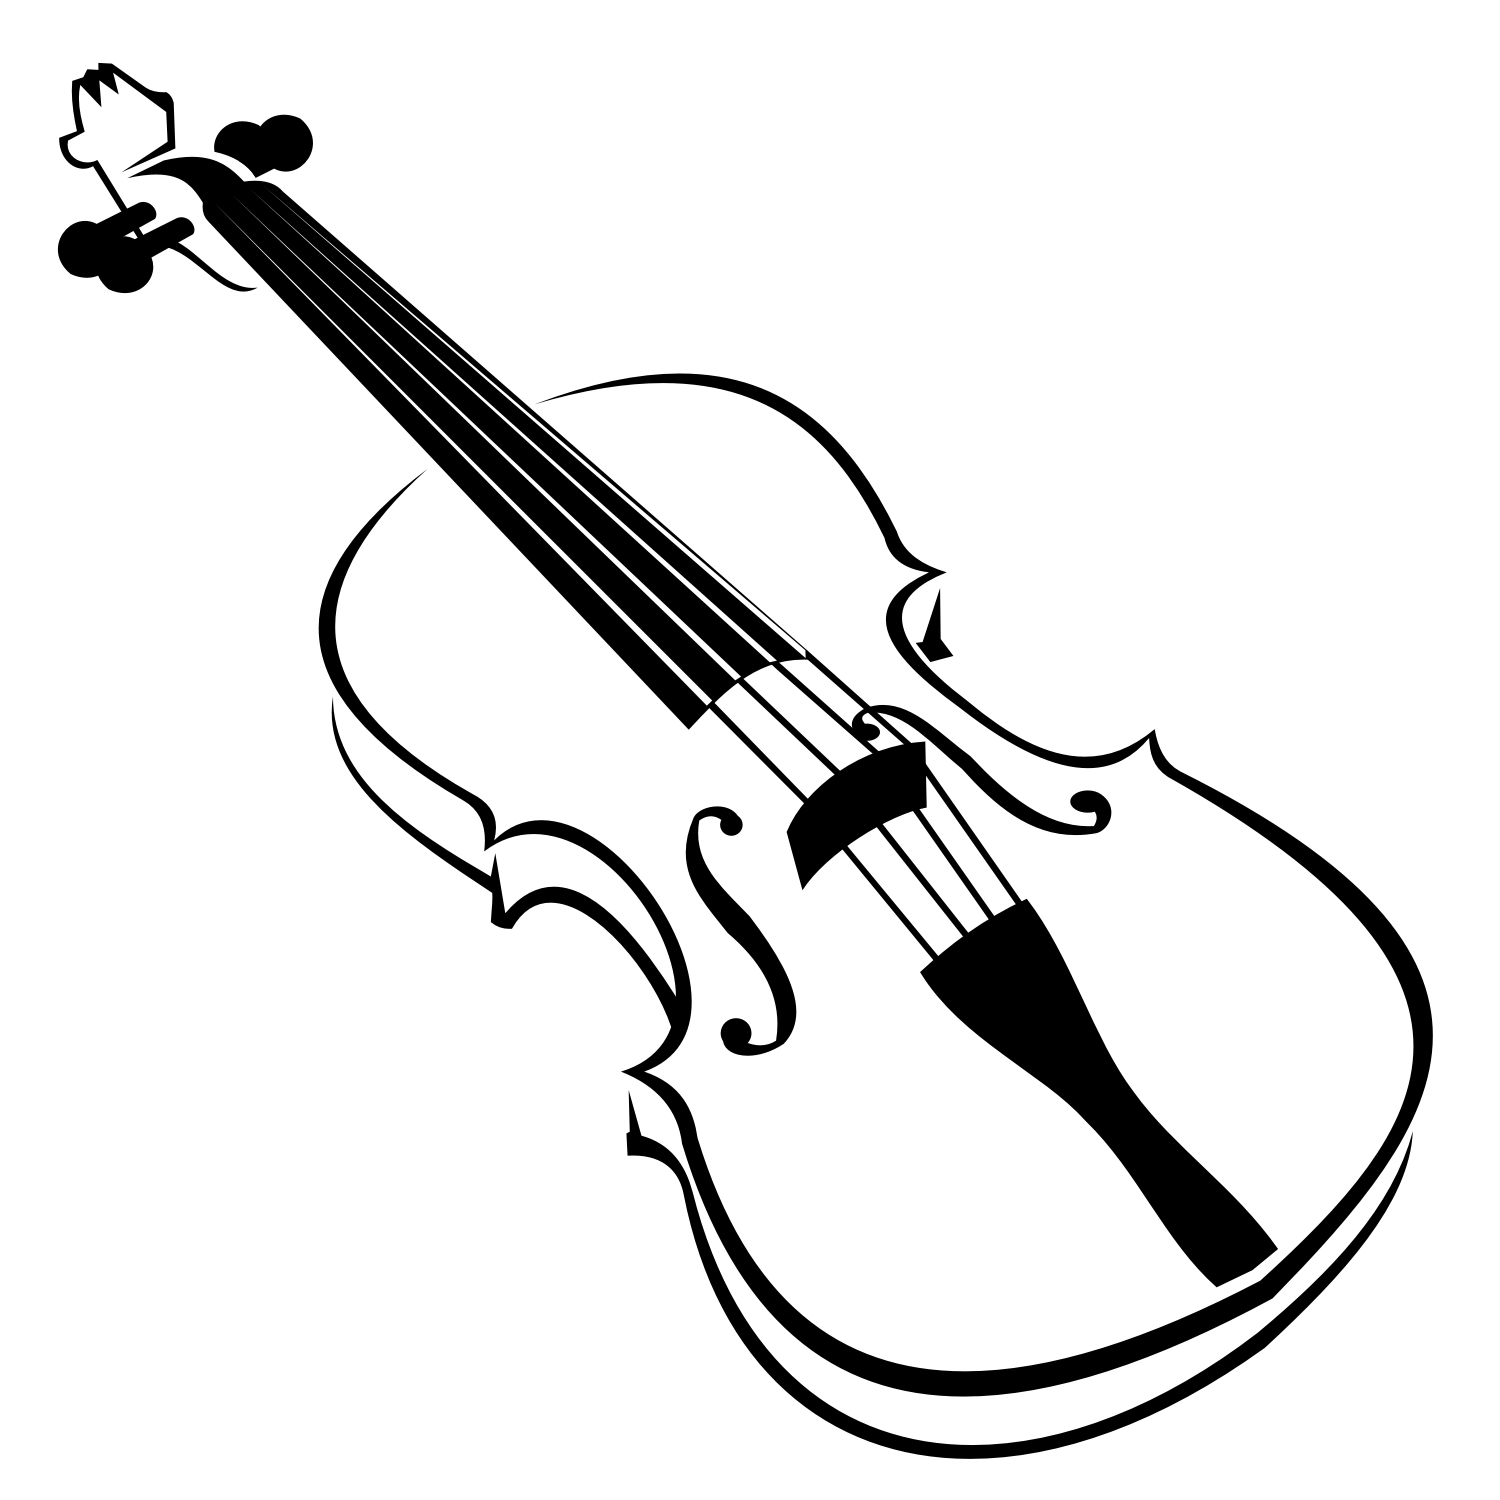 Violin clipart vector image black and white stock Vector for free use: Violin vector image black and white stock